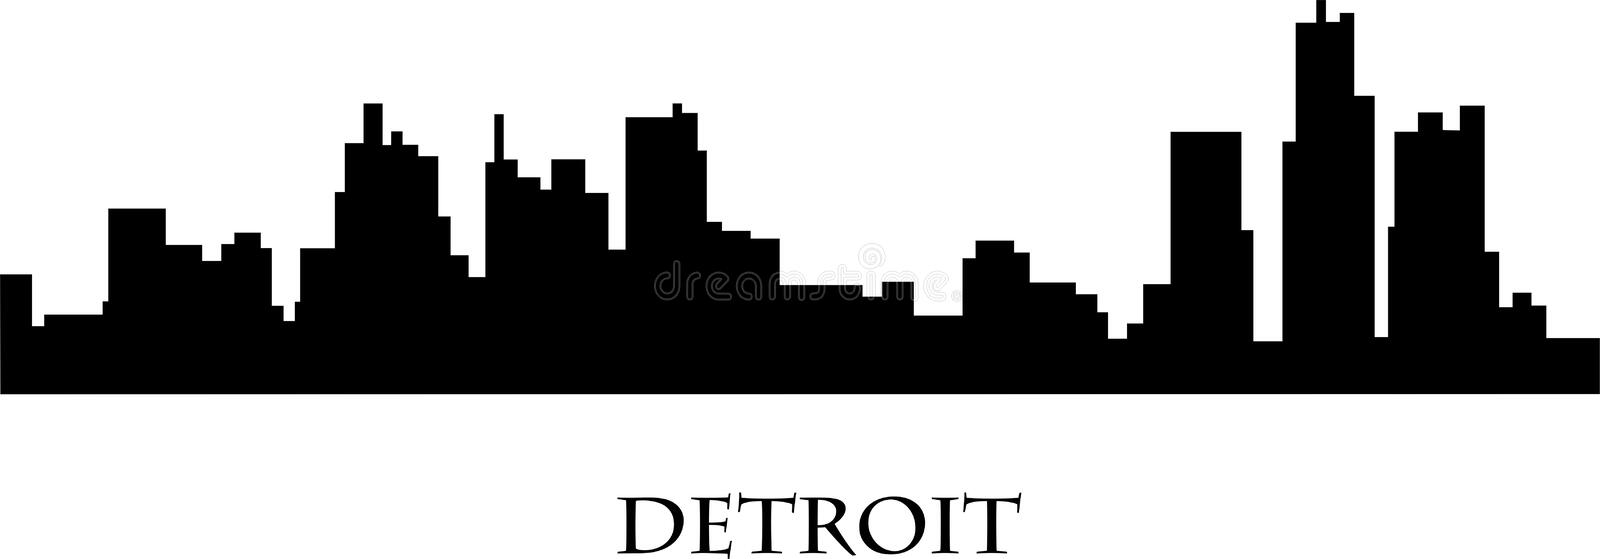 detroit illustration de vecteur